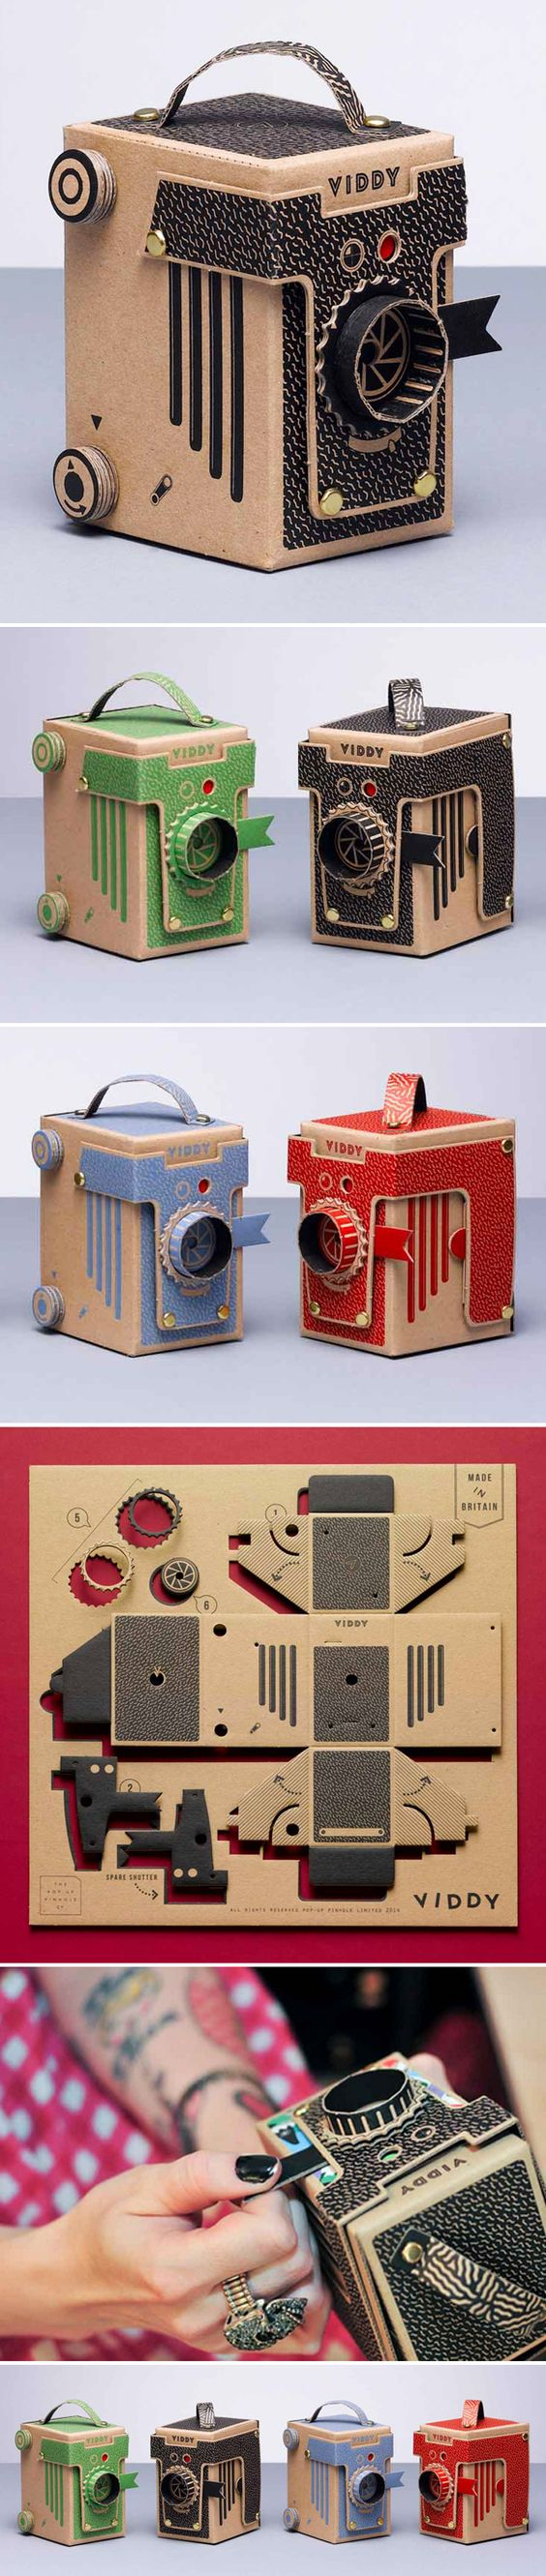 A DIY, screenprinted & diecut by hand, pinhole camera made of recycled card